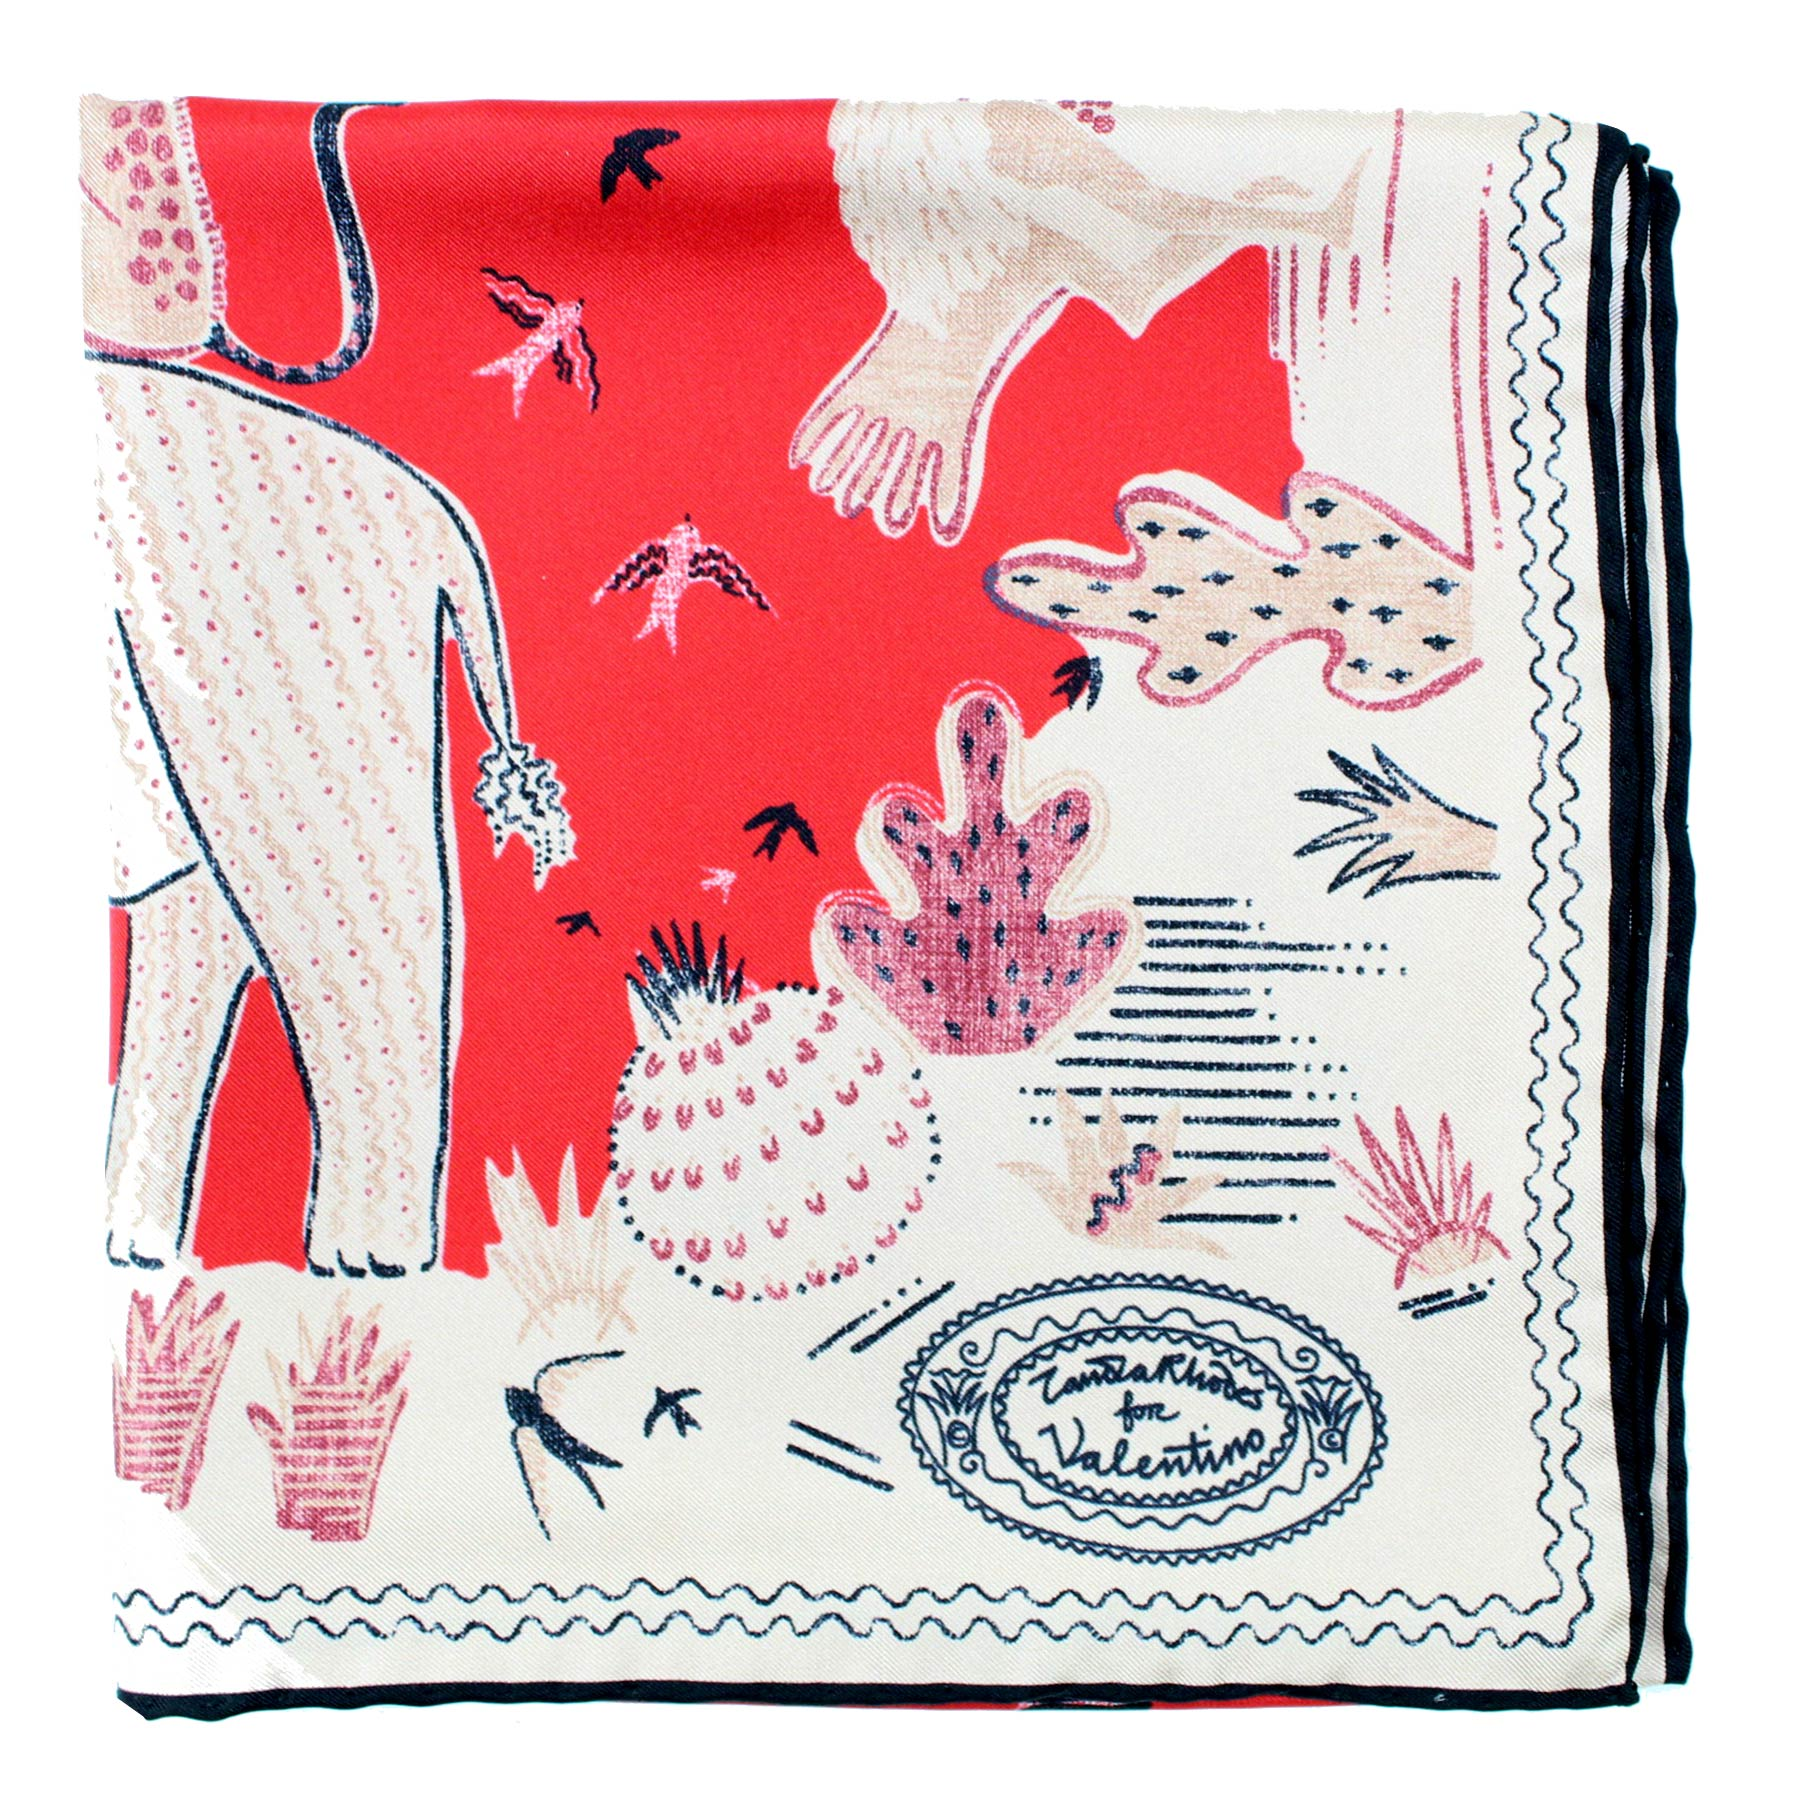 Valentino Scarf Pink Red Animal Drawings - Large Twill Silk Square Scarf SALE